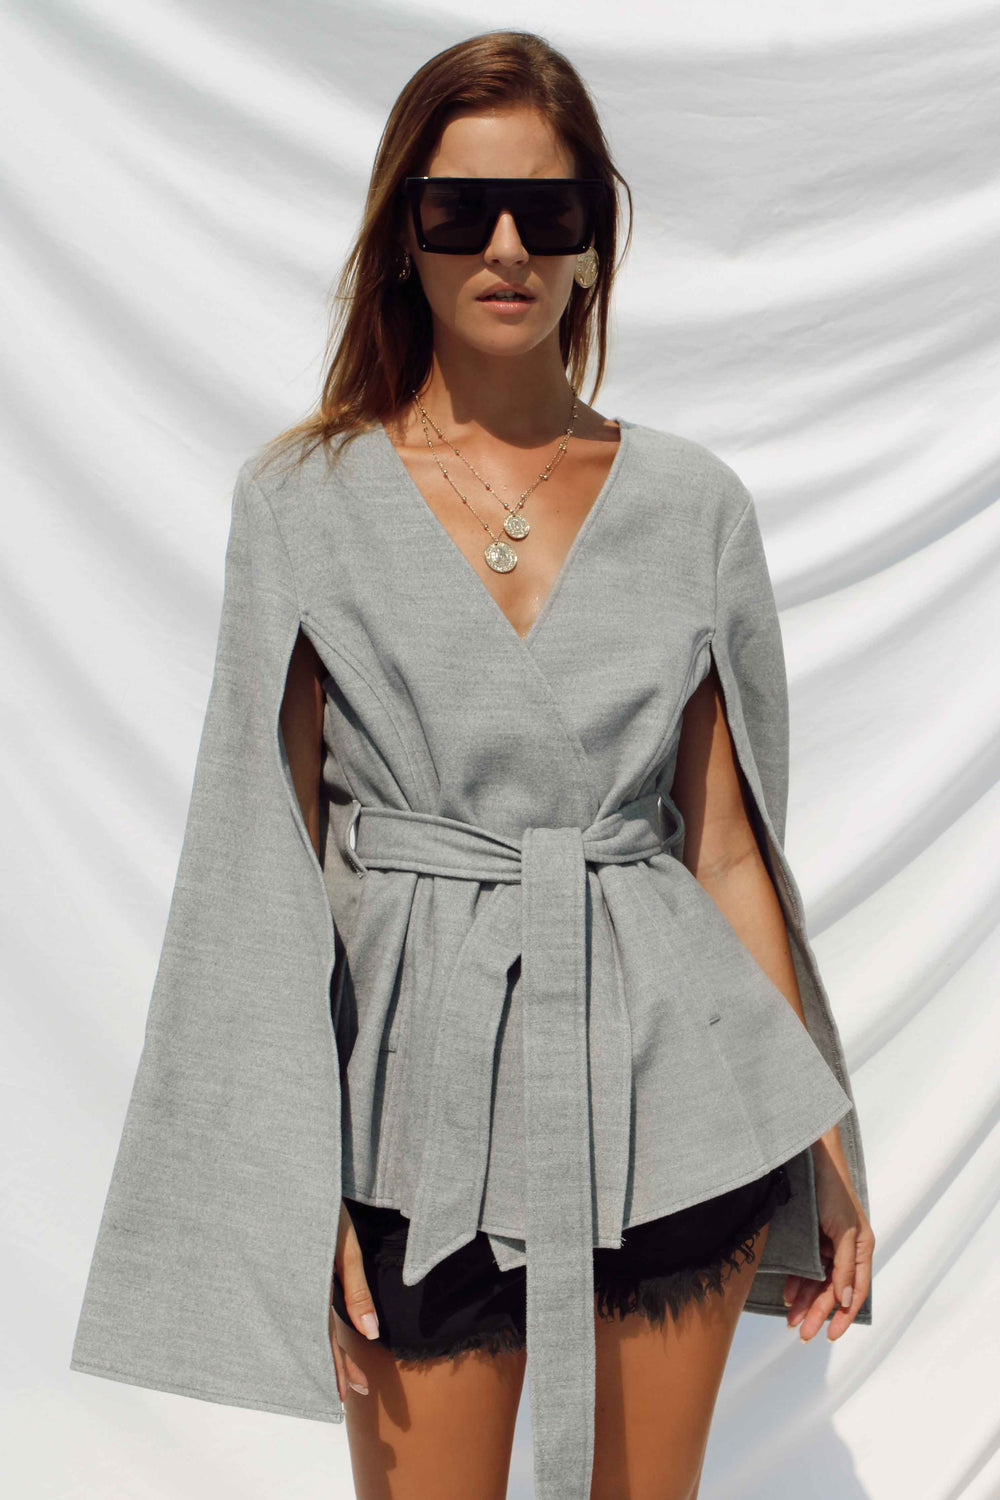 GISELLE CAPE COAT - Chic Le Frique